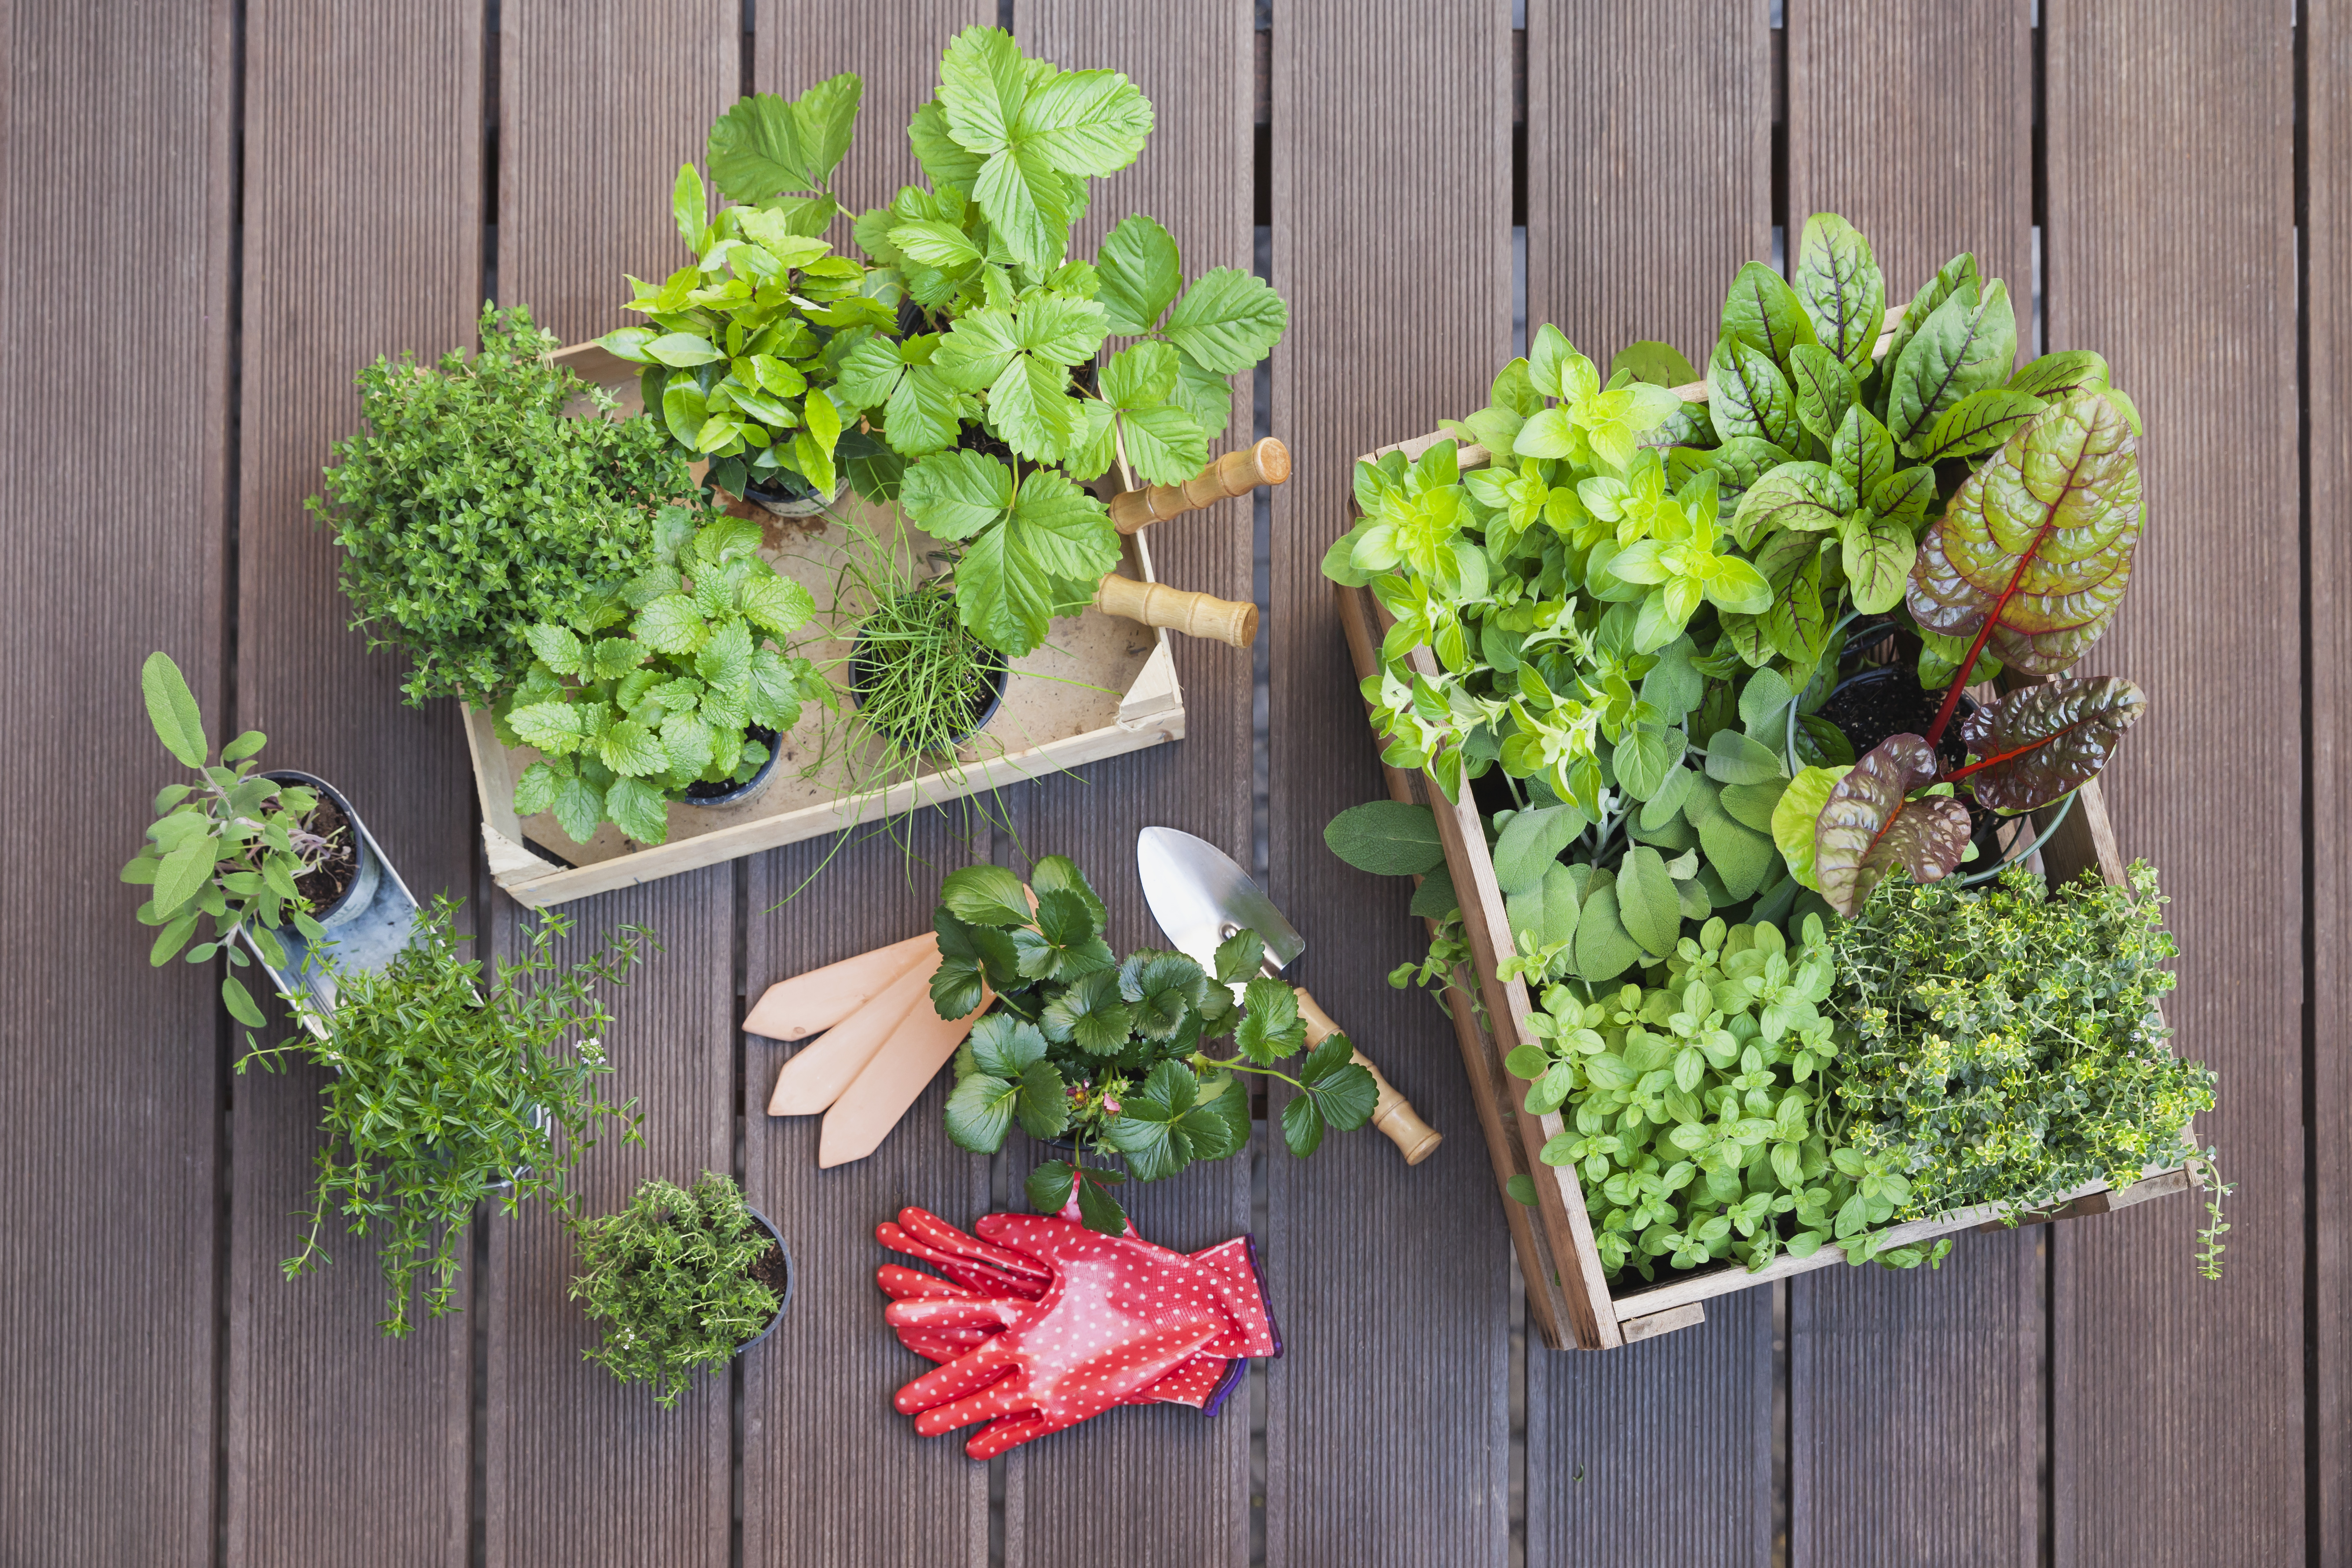 What Kind of Soil Do You Use in Containers for Vegetables